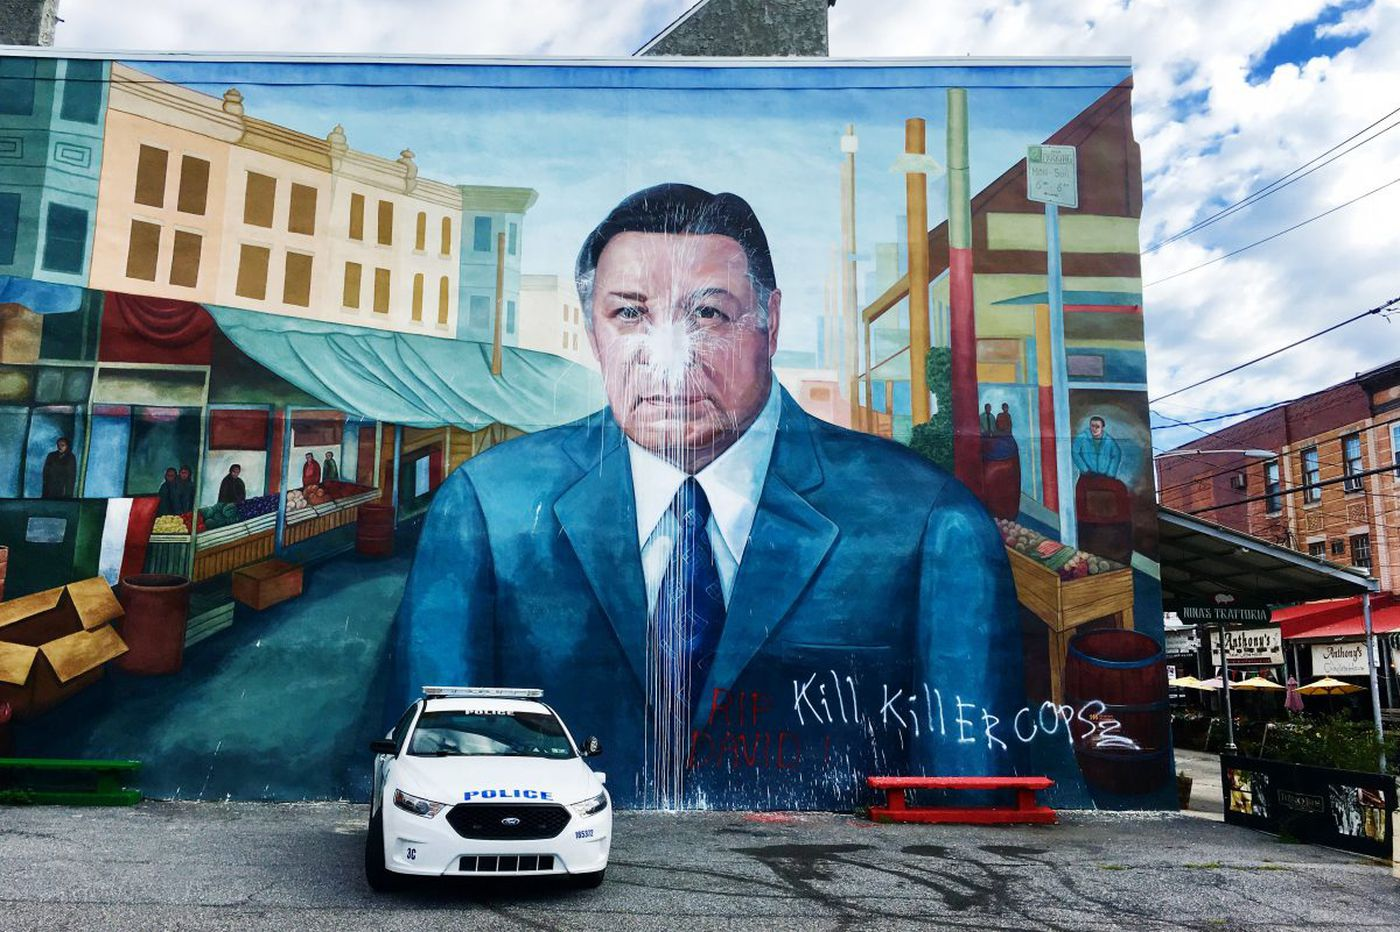 Italian Market stuck in the middle with Frank Rizzo mural